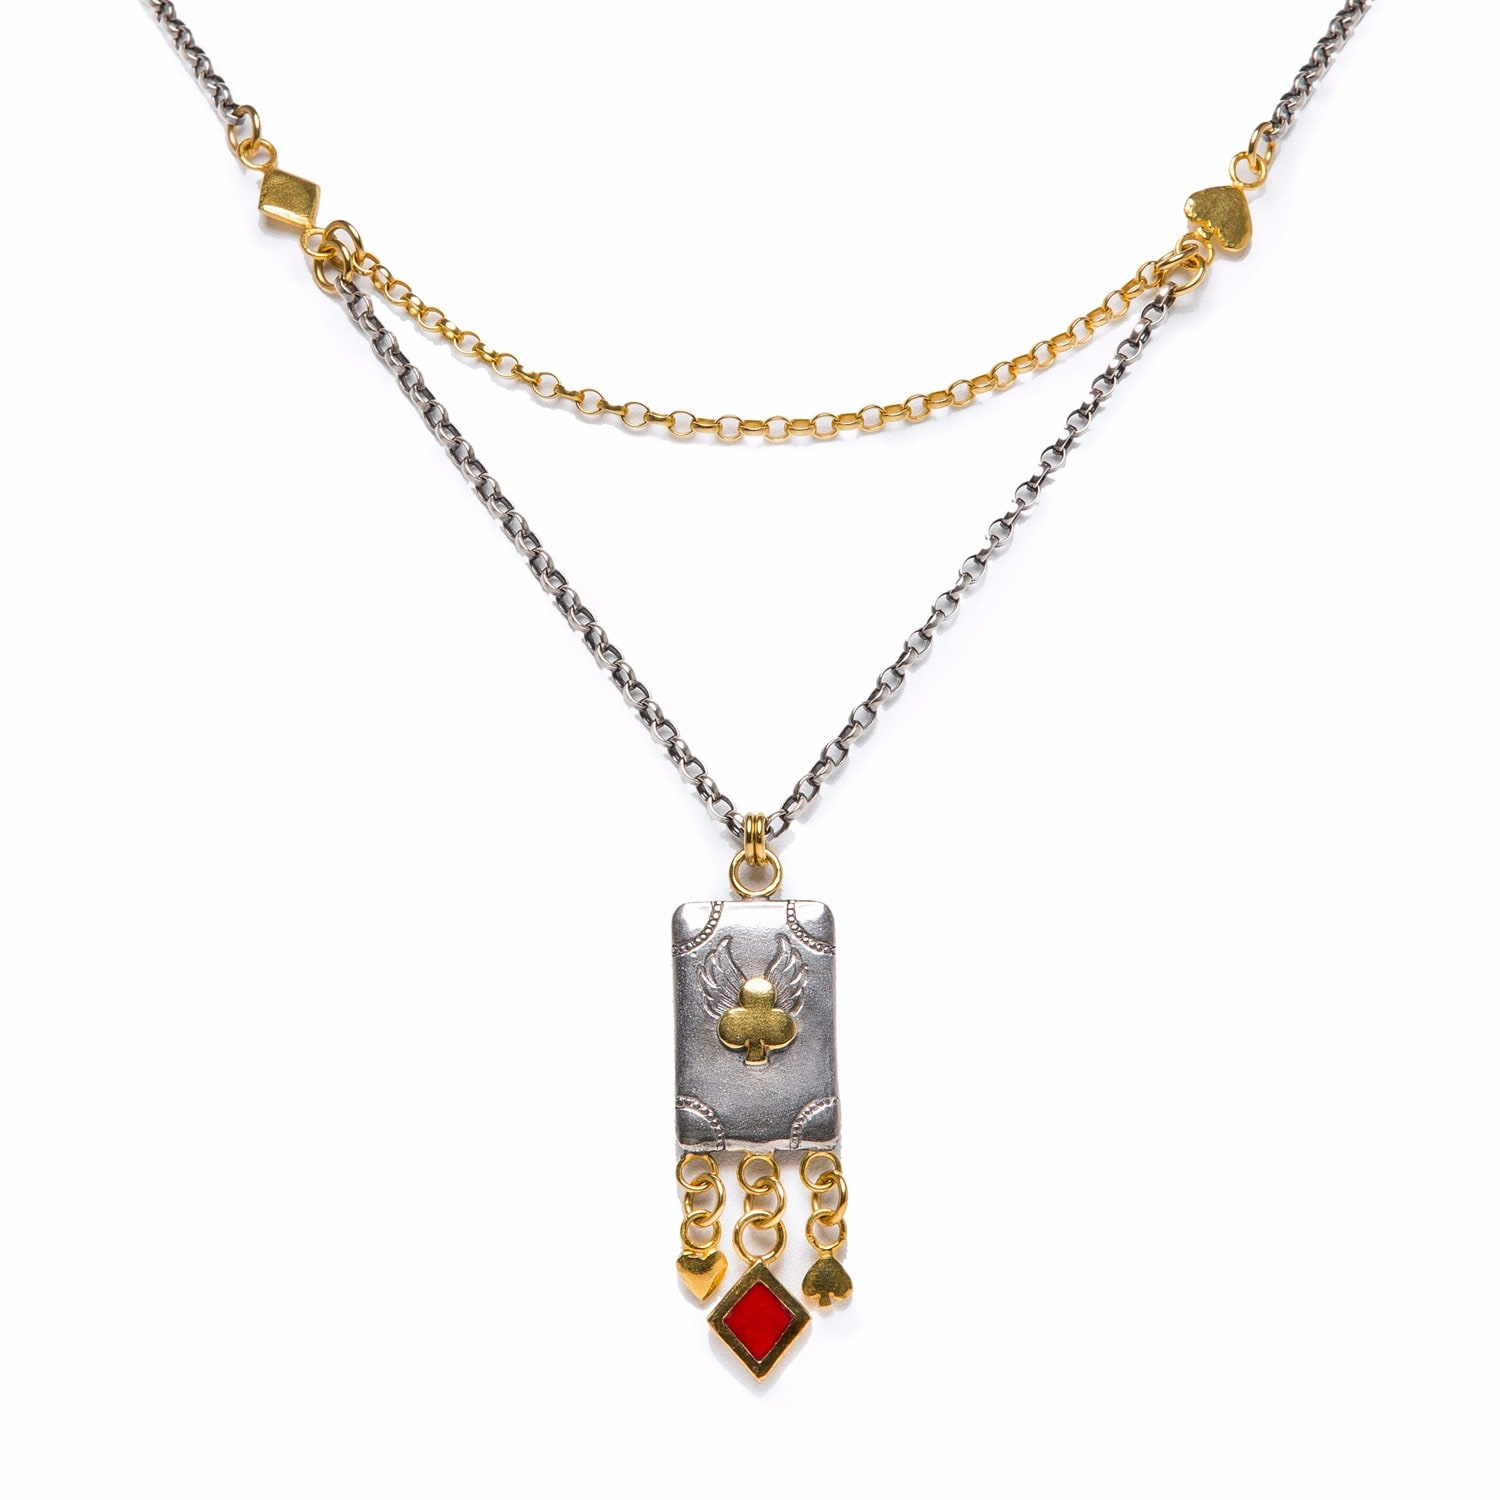 Sophie Harley London - Imperial Necklace